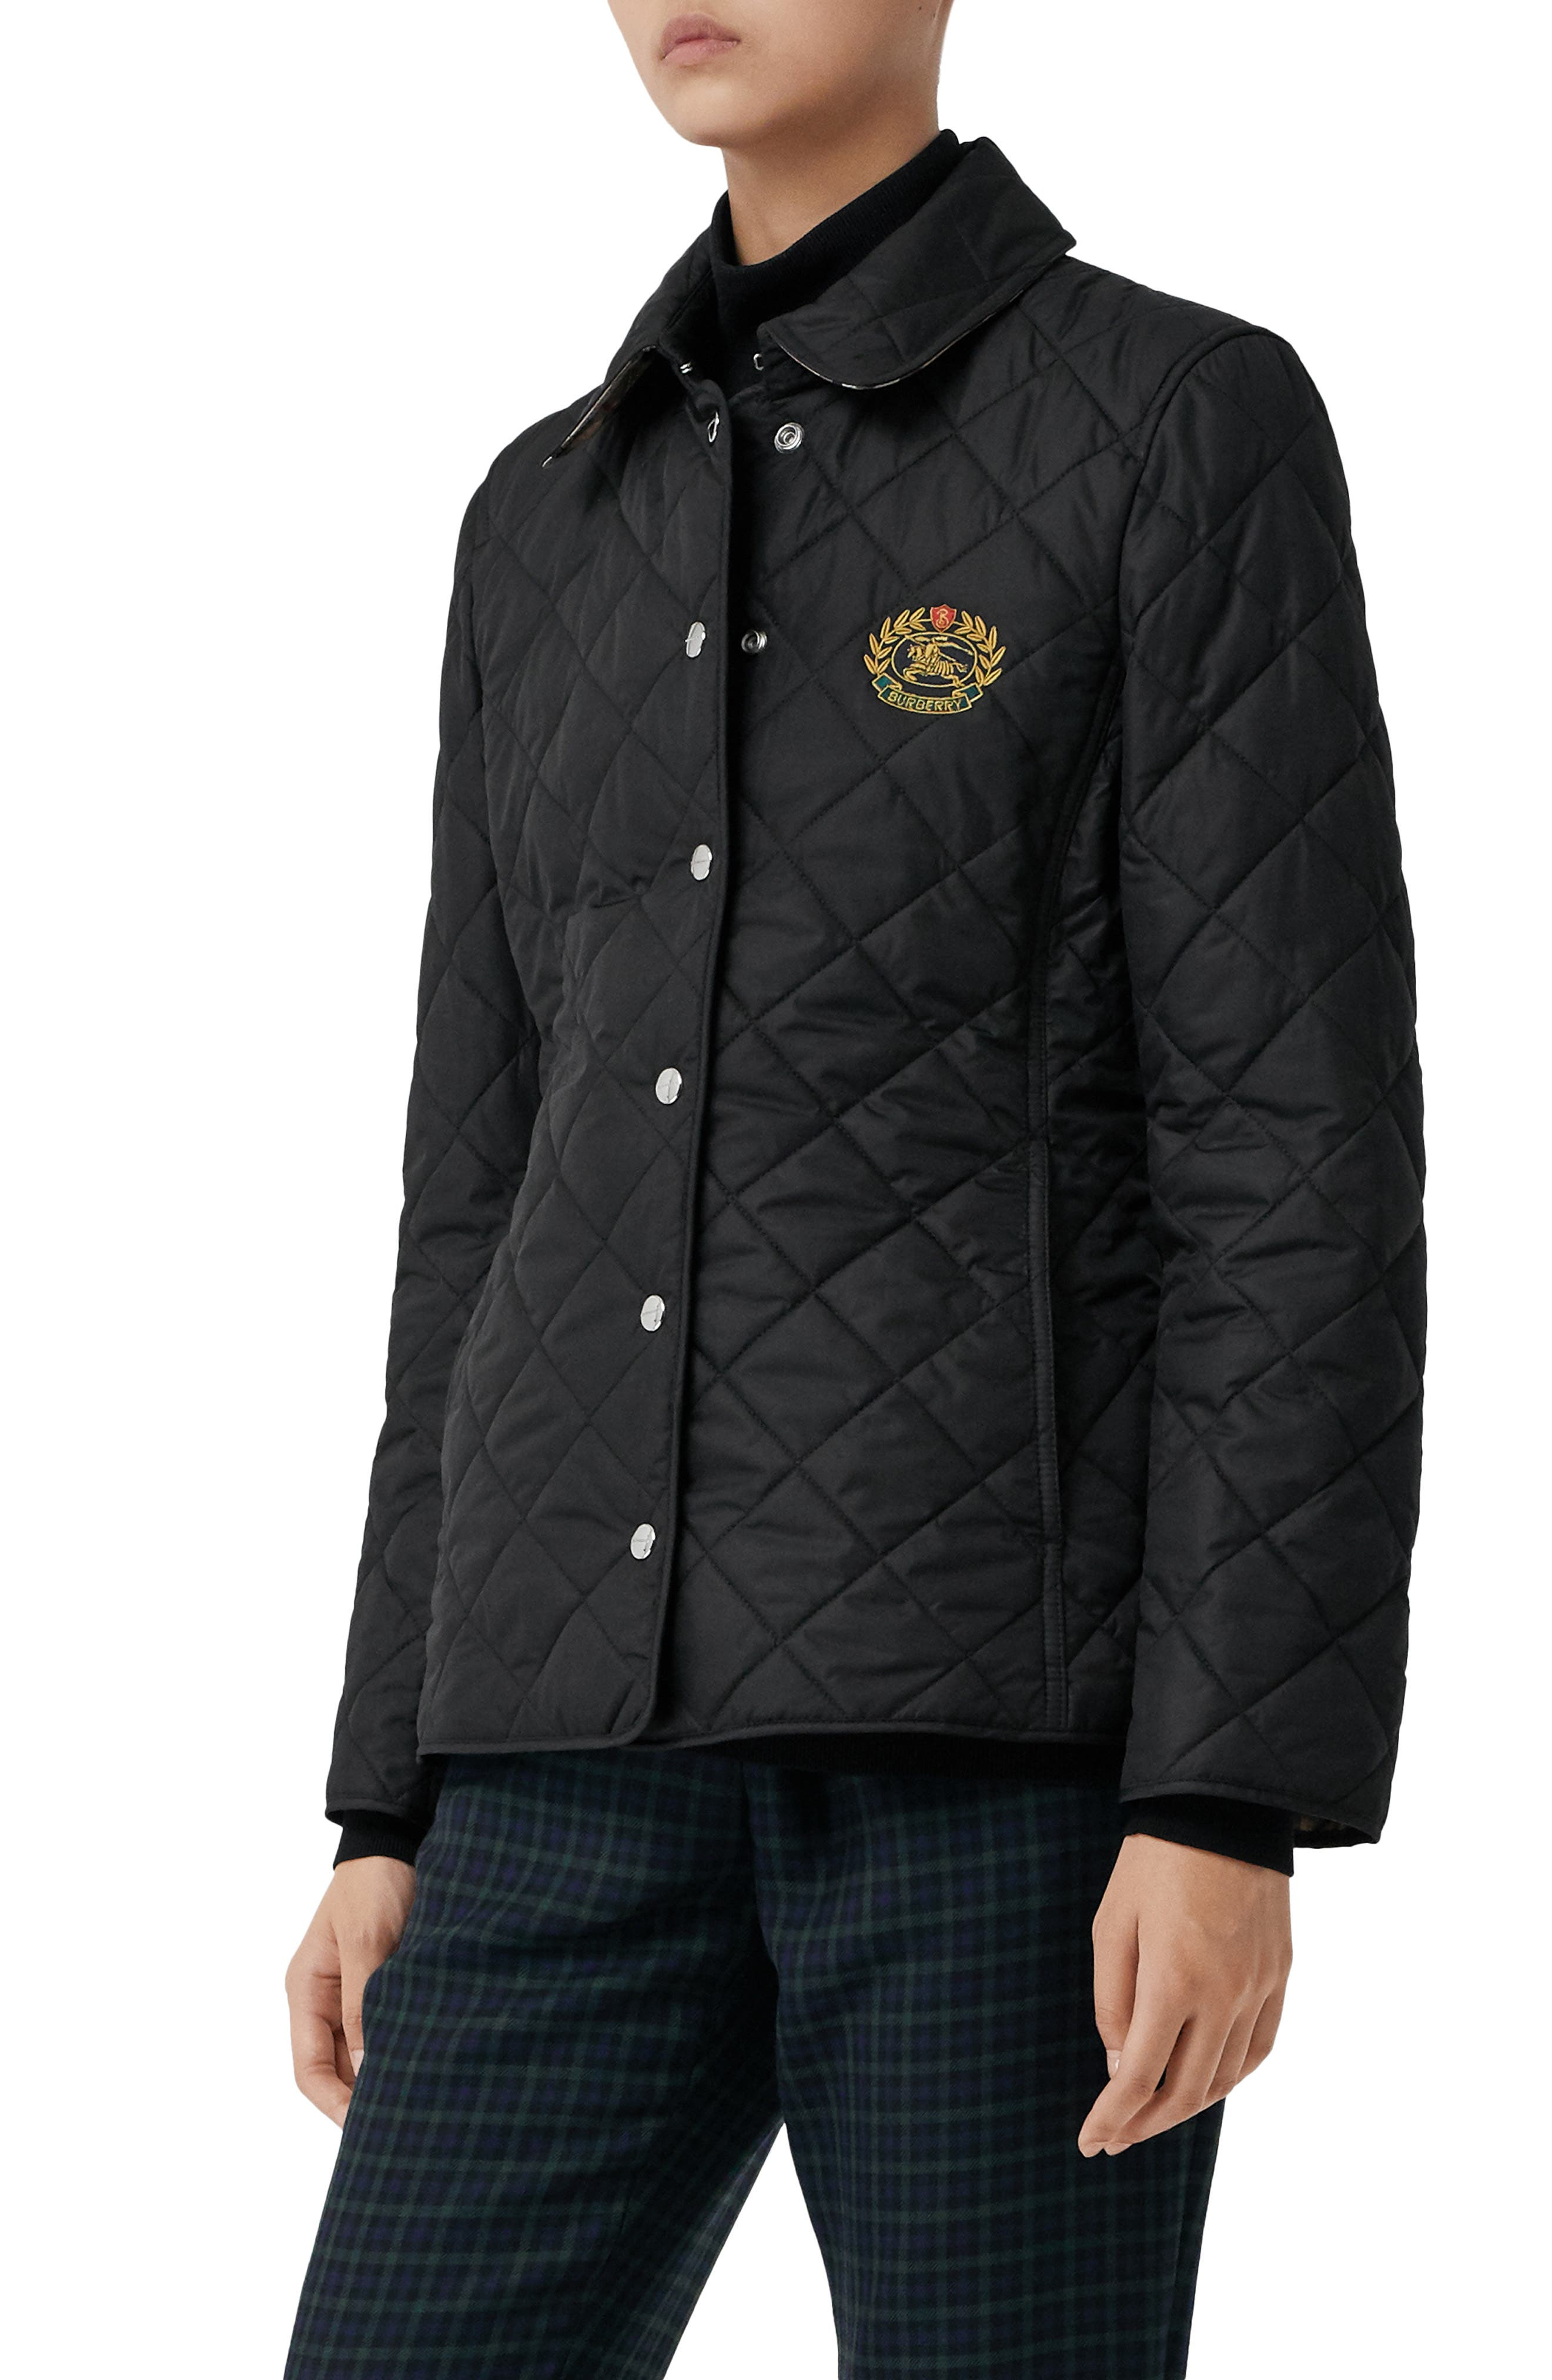 Franwell Diamond Quilted Jacket,                             Alternate thumbnail 3, color,                             BLACK